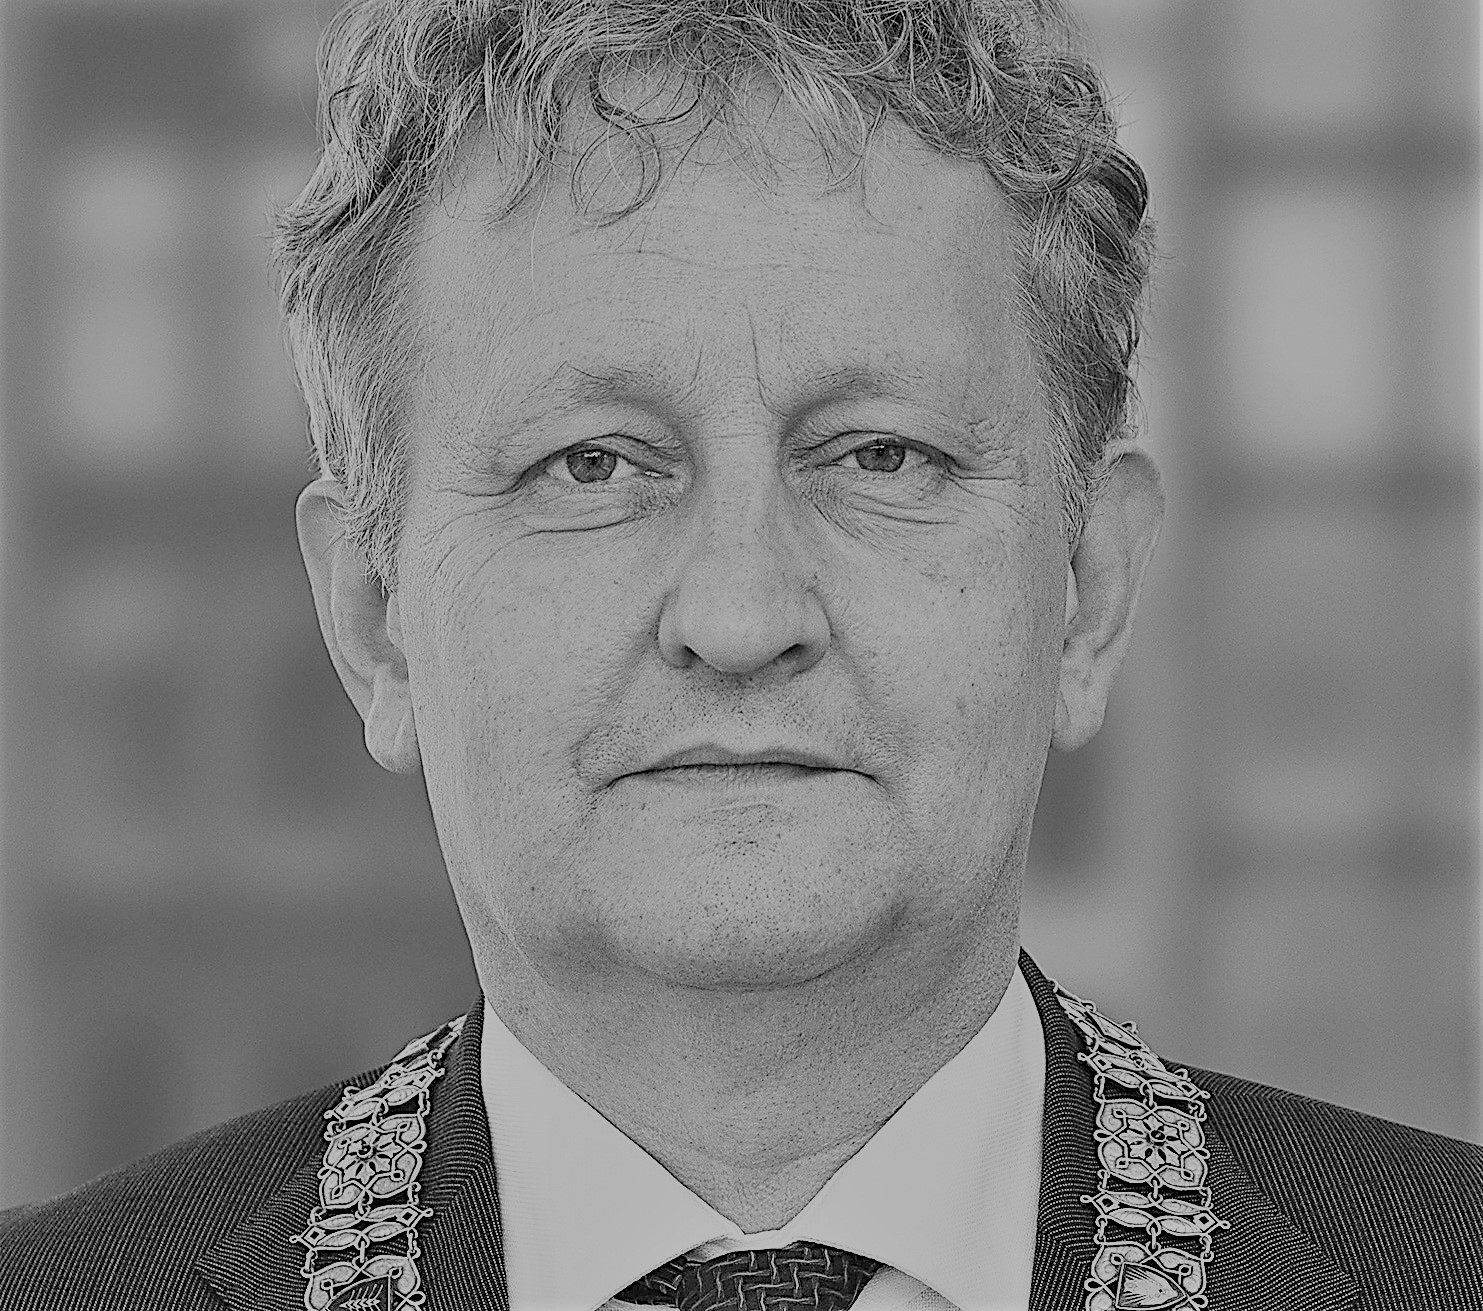 The International AIDS Society mourns the passing of Amsterdam Mayor